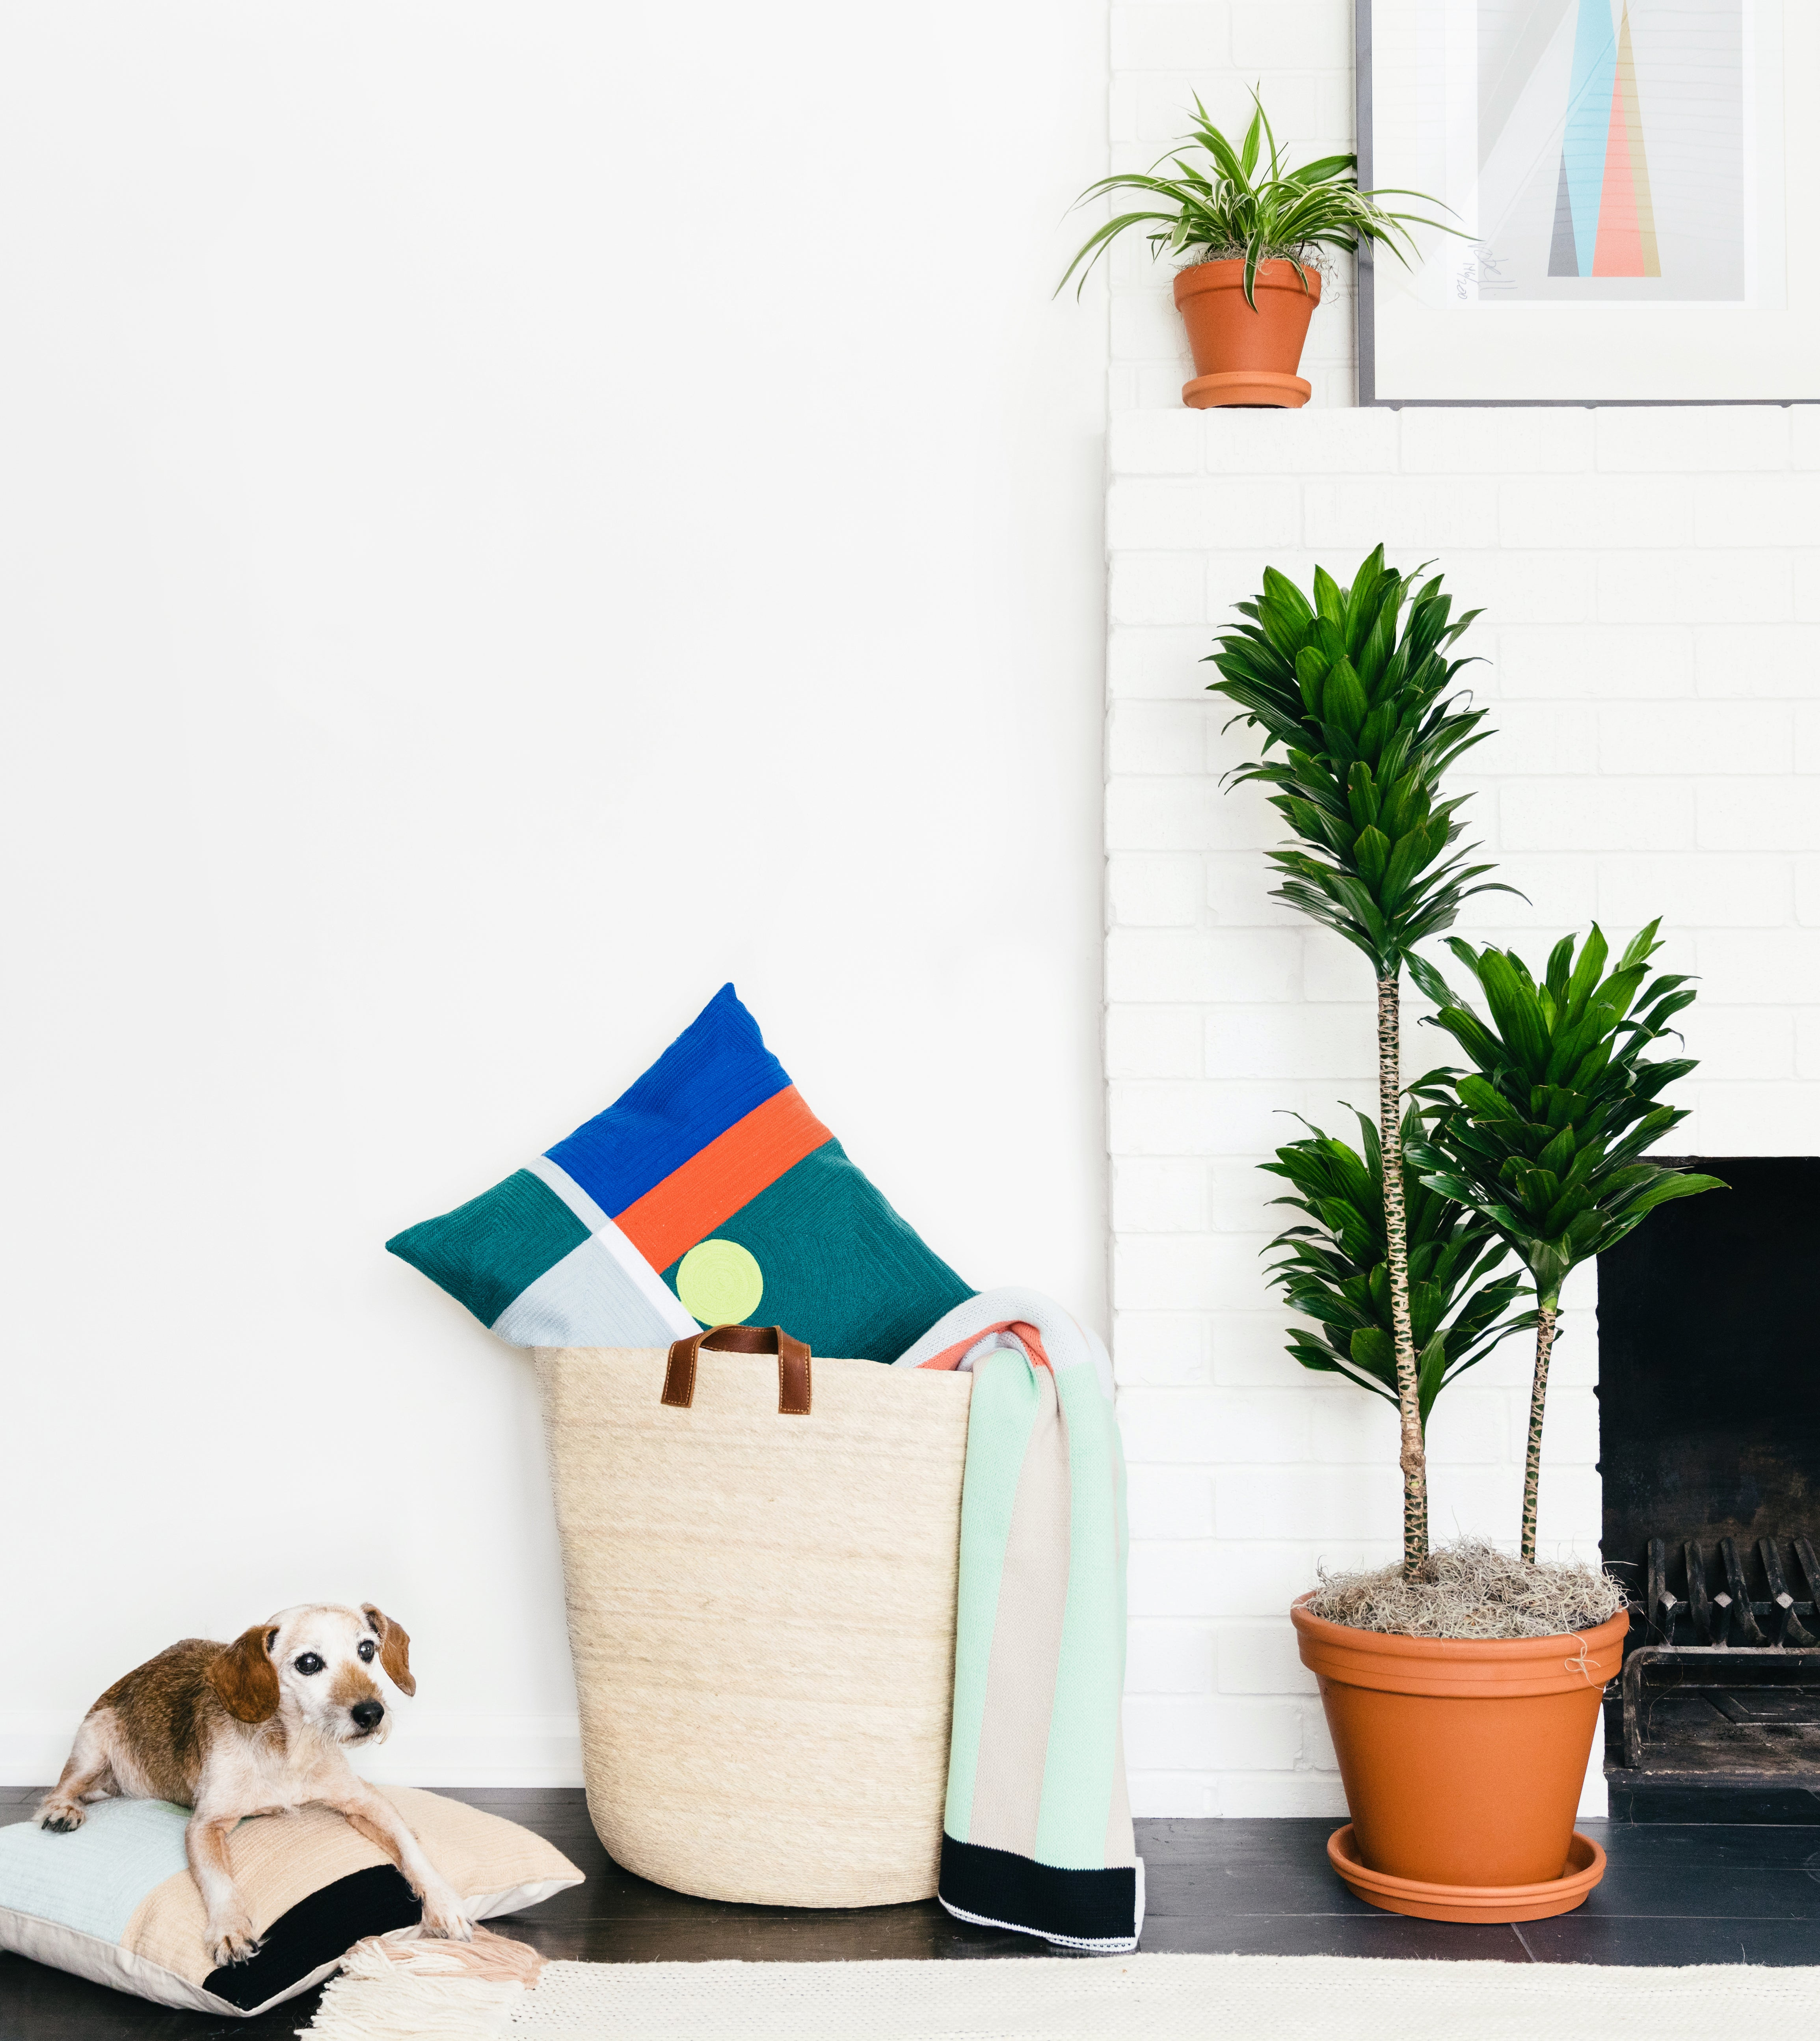 The Most Popular Indoor Plants of 2019, According to Experts